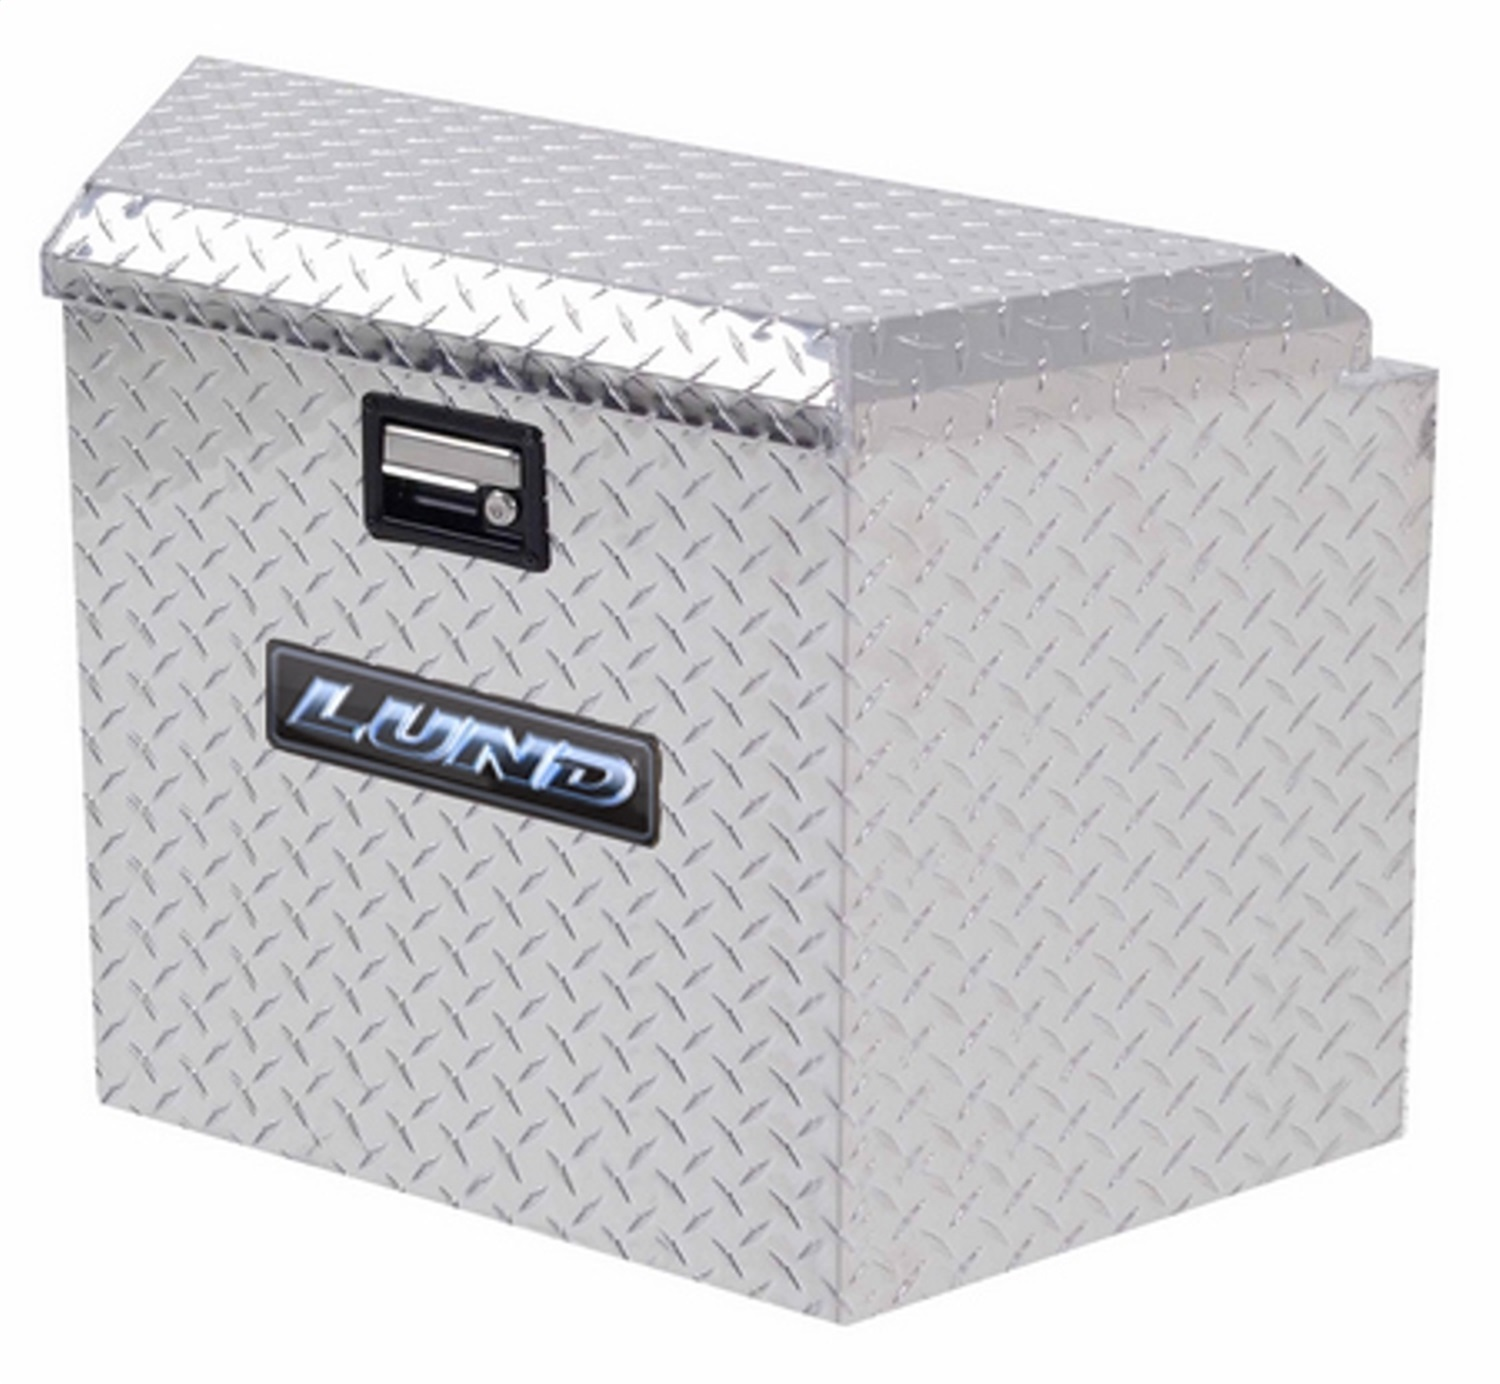 Aluminum Trailer Tongue Storage Box, L 34 in. x W 21 in. x H 18 in., Brite